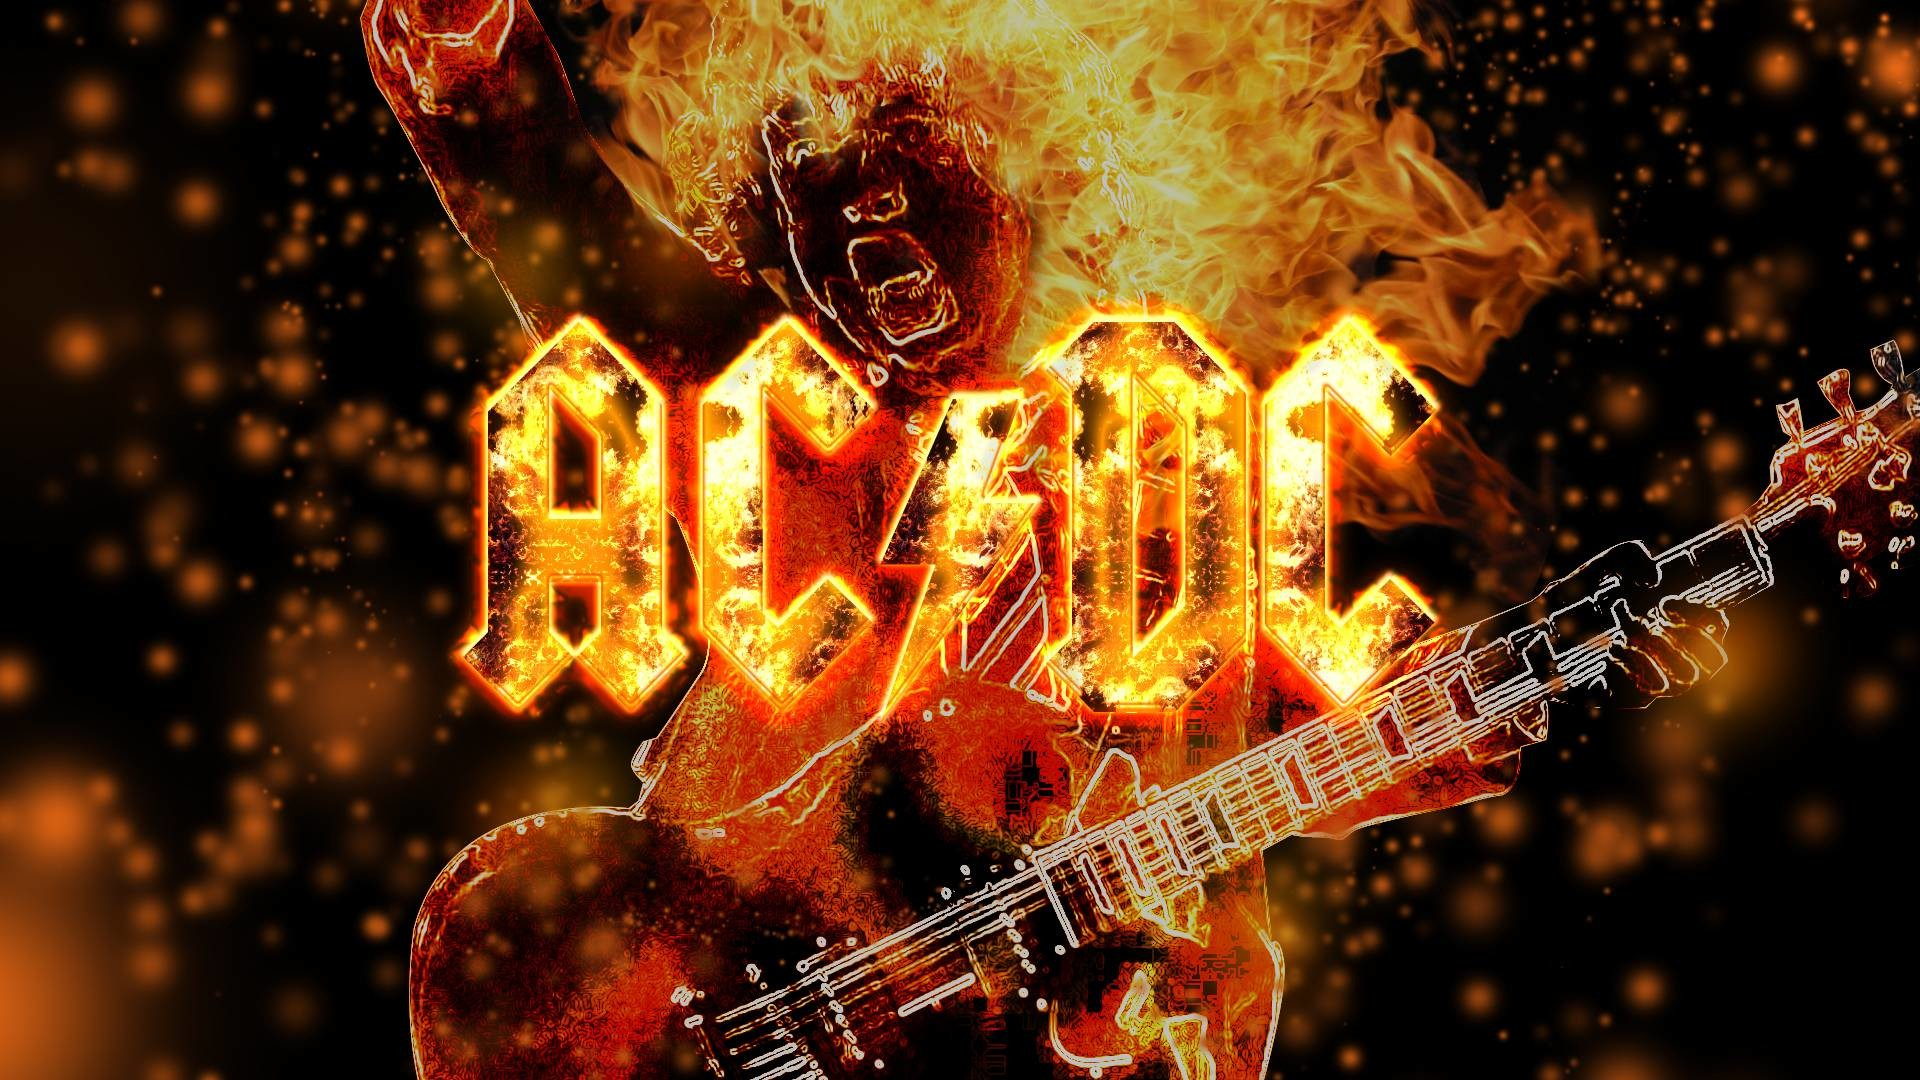 1920x1080 AC/DC background | AC/DC wallpapers